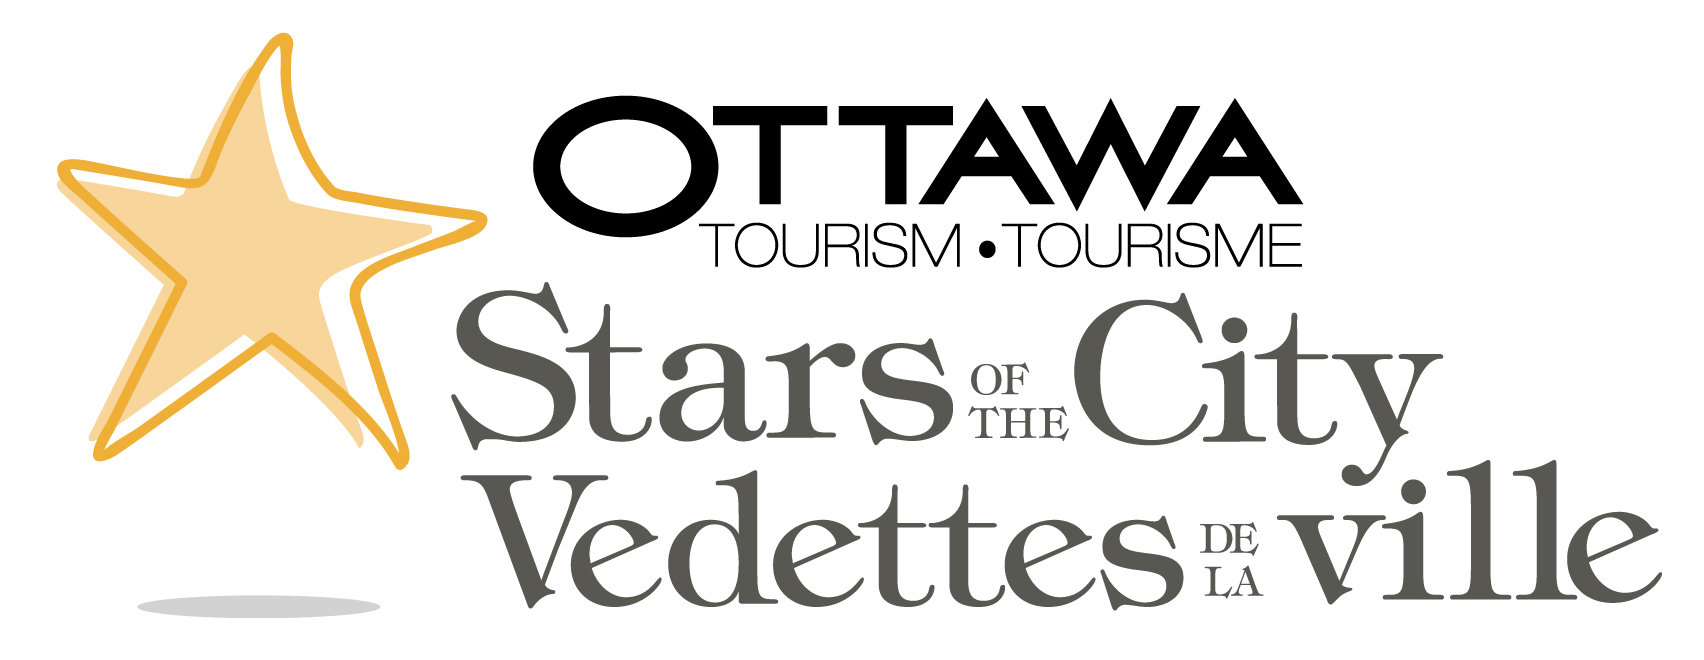 Ottawa Tourism Star